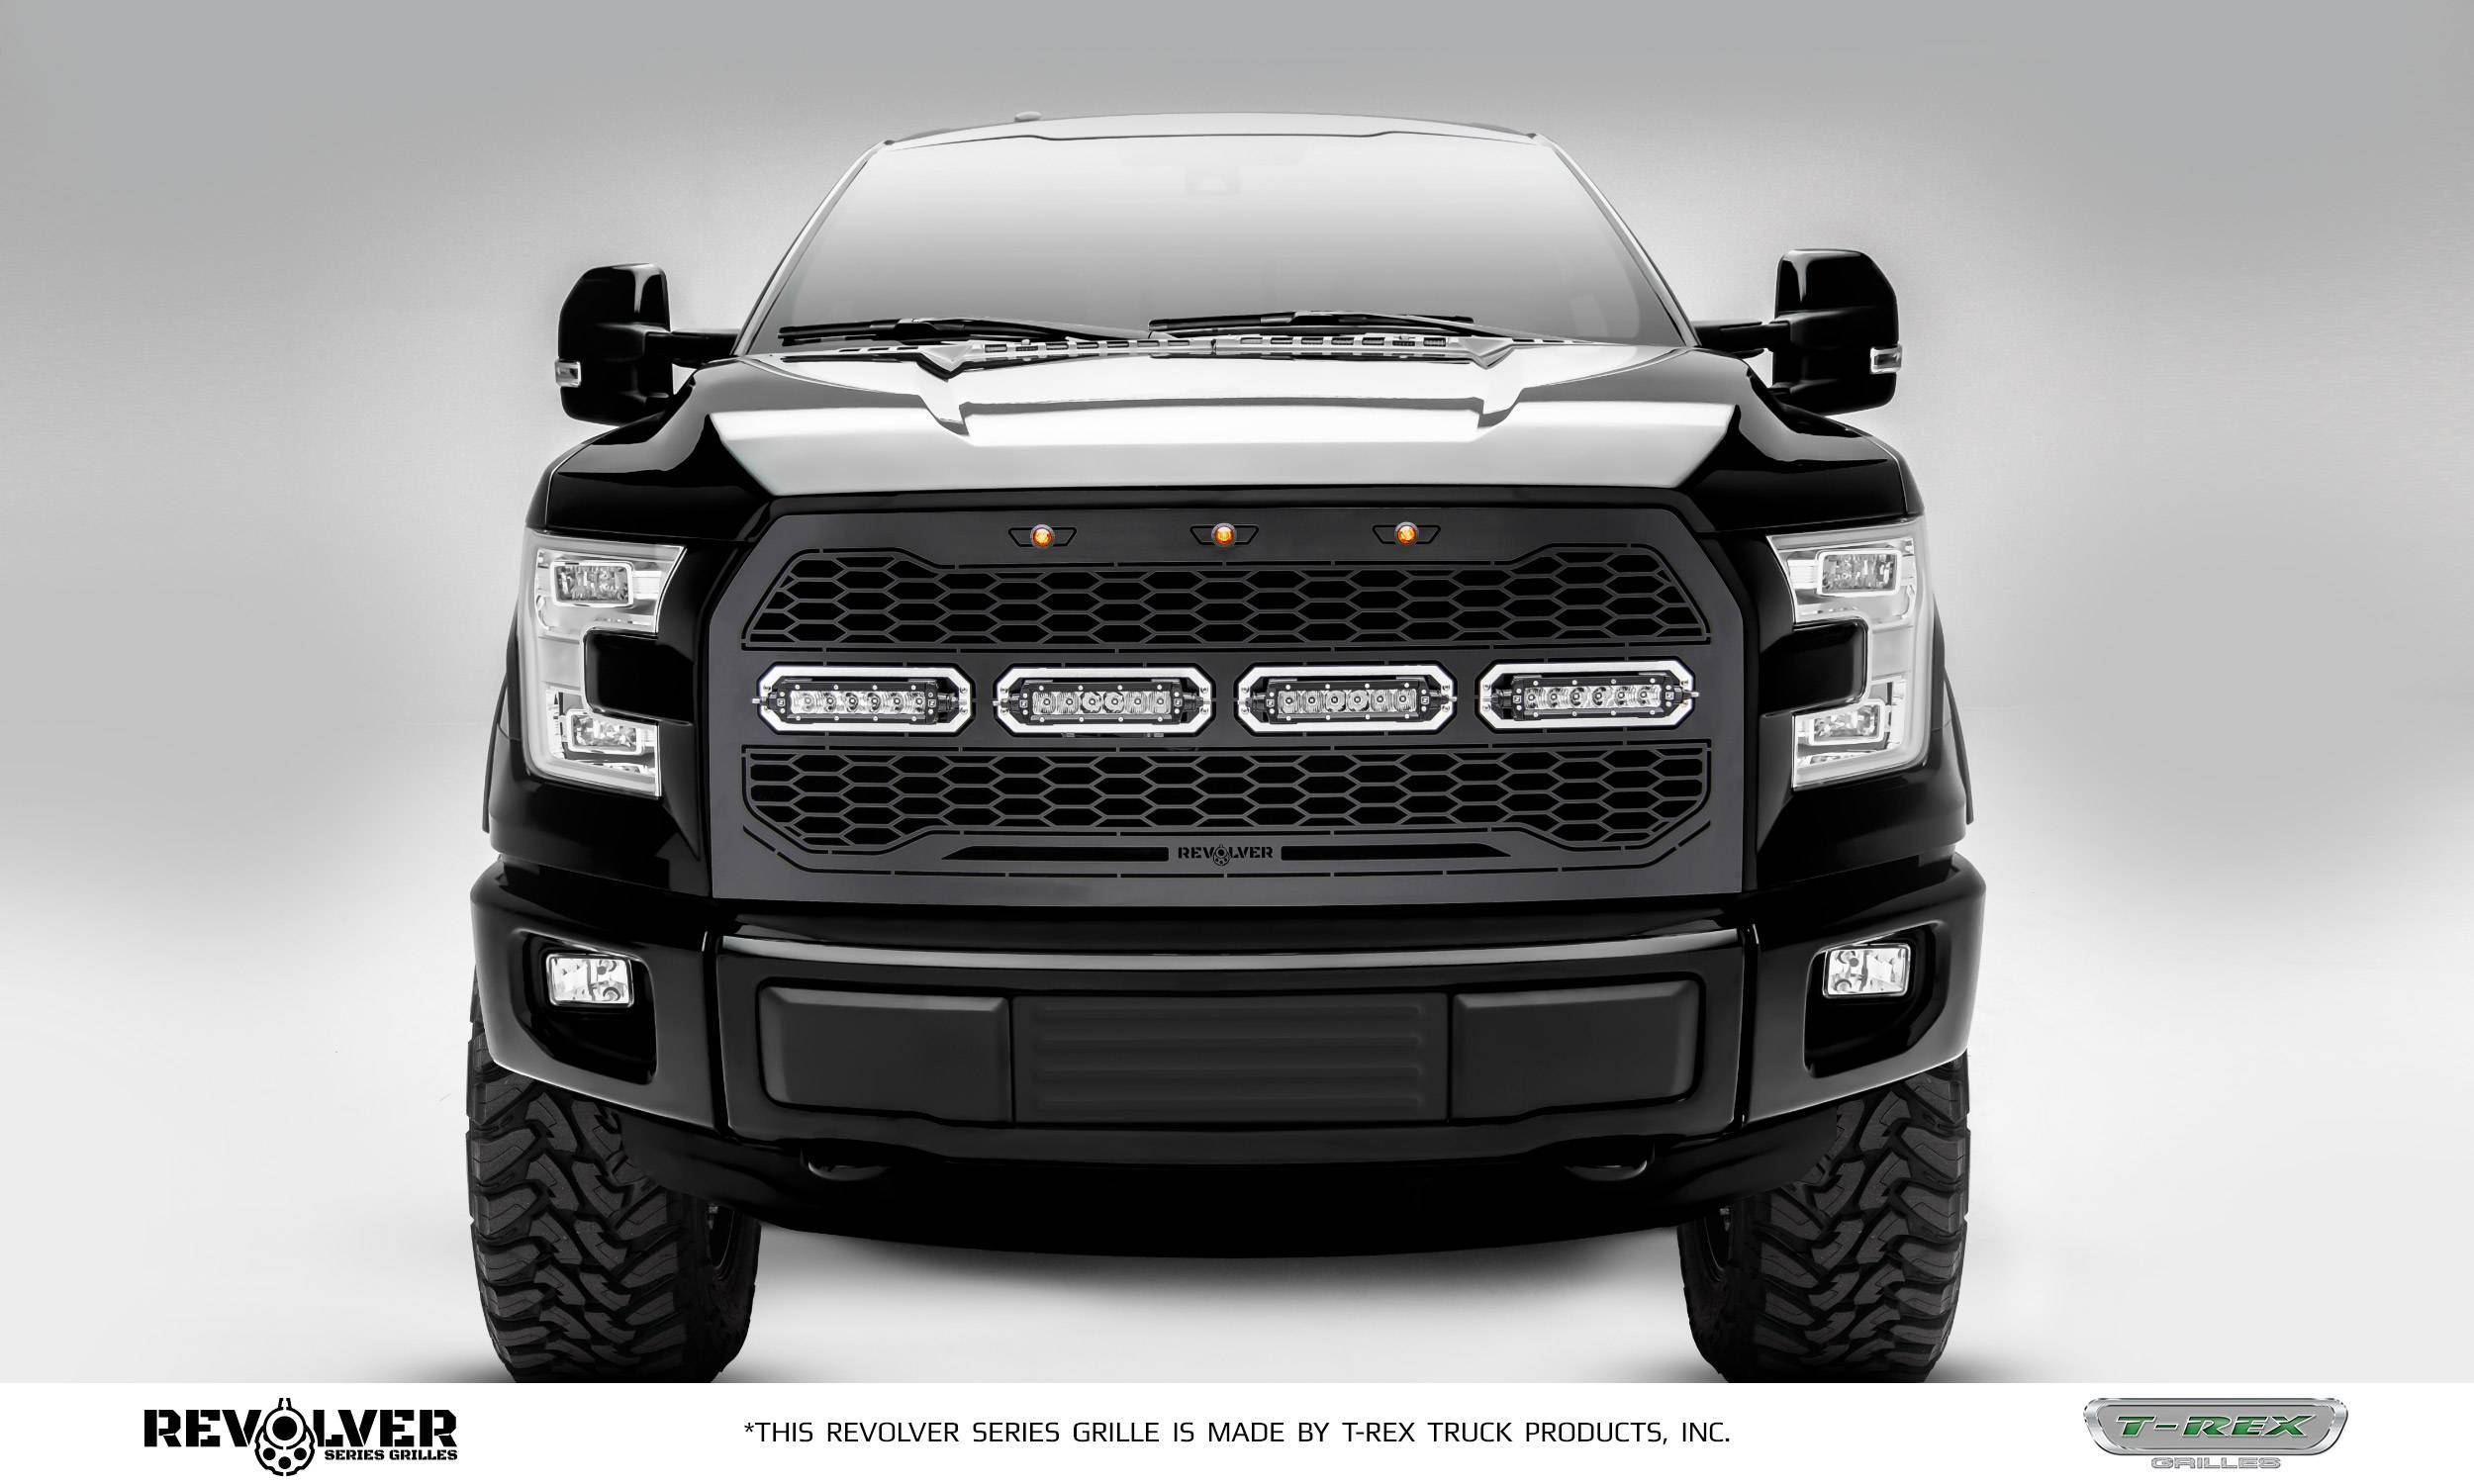 """T-REX Grilles - 2015-2017 F-150 Revolver Grille, Black, 1 Pc, Replacement with (4) 6"""" LEDs, Does Not Fit Vehicles with Camera - PN #6515731"""